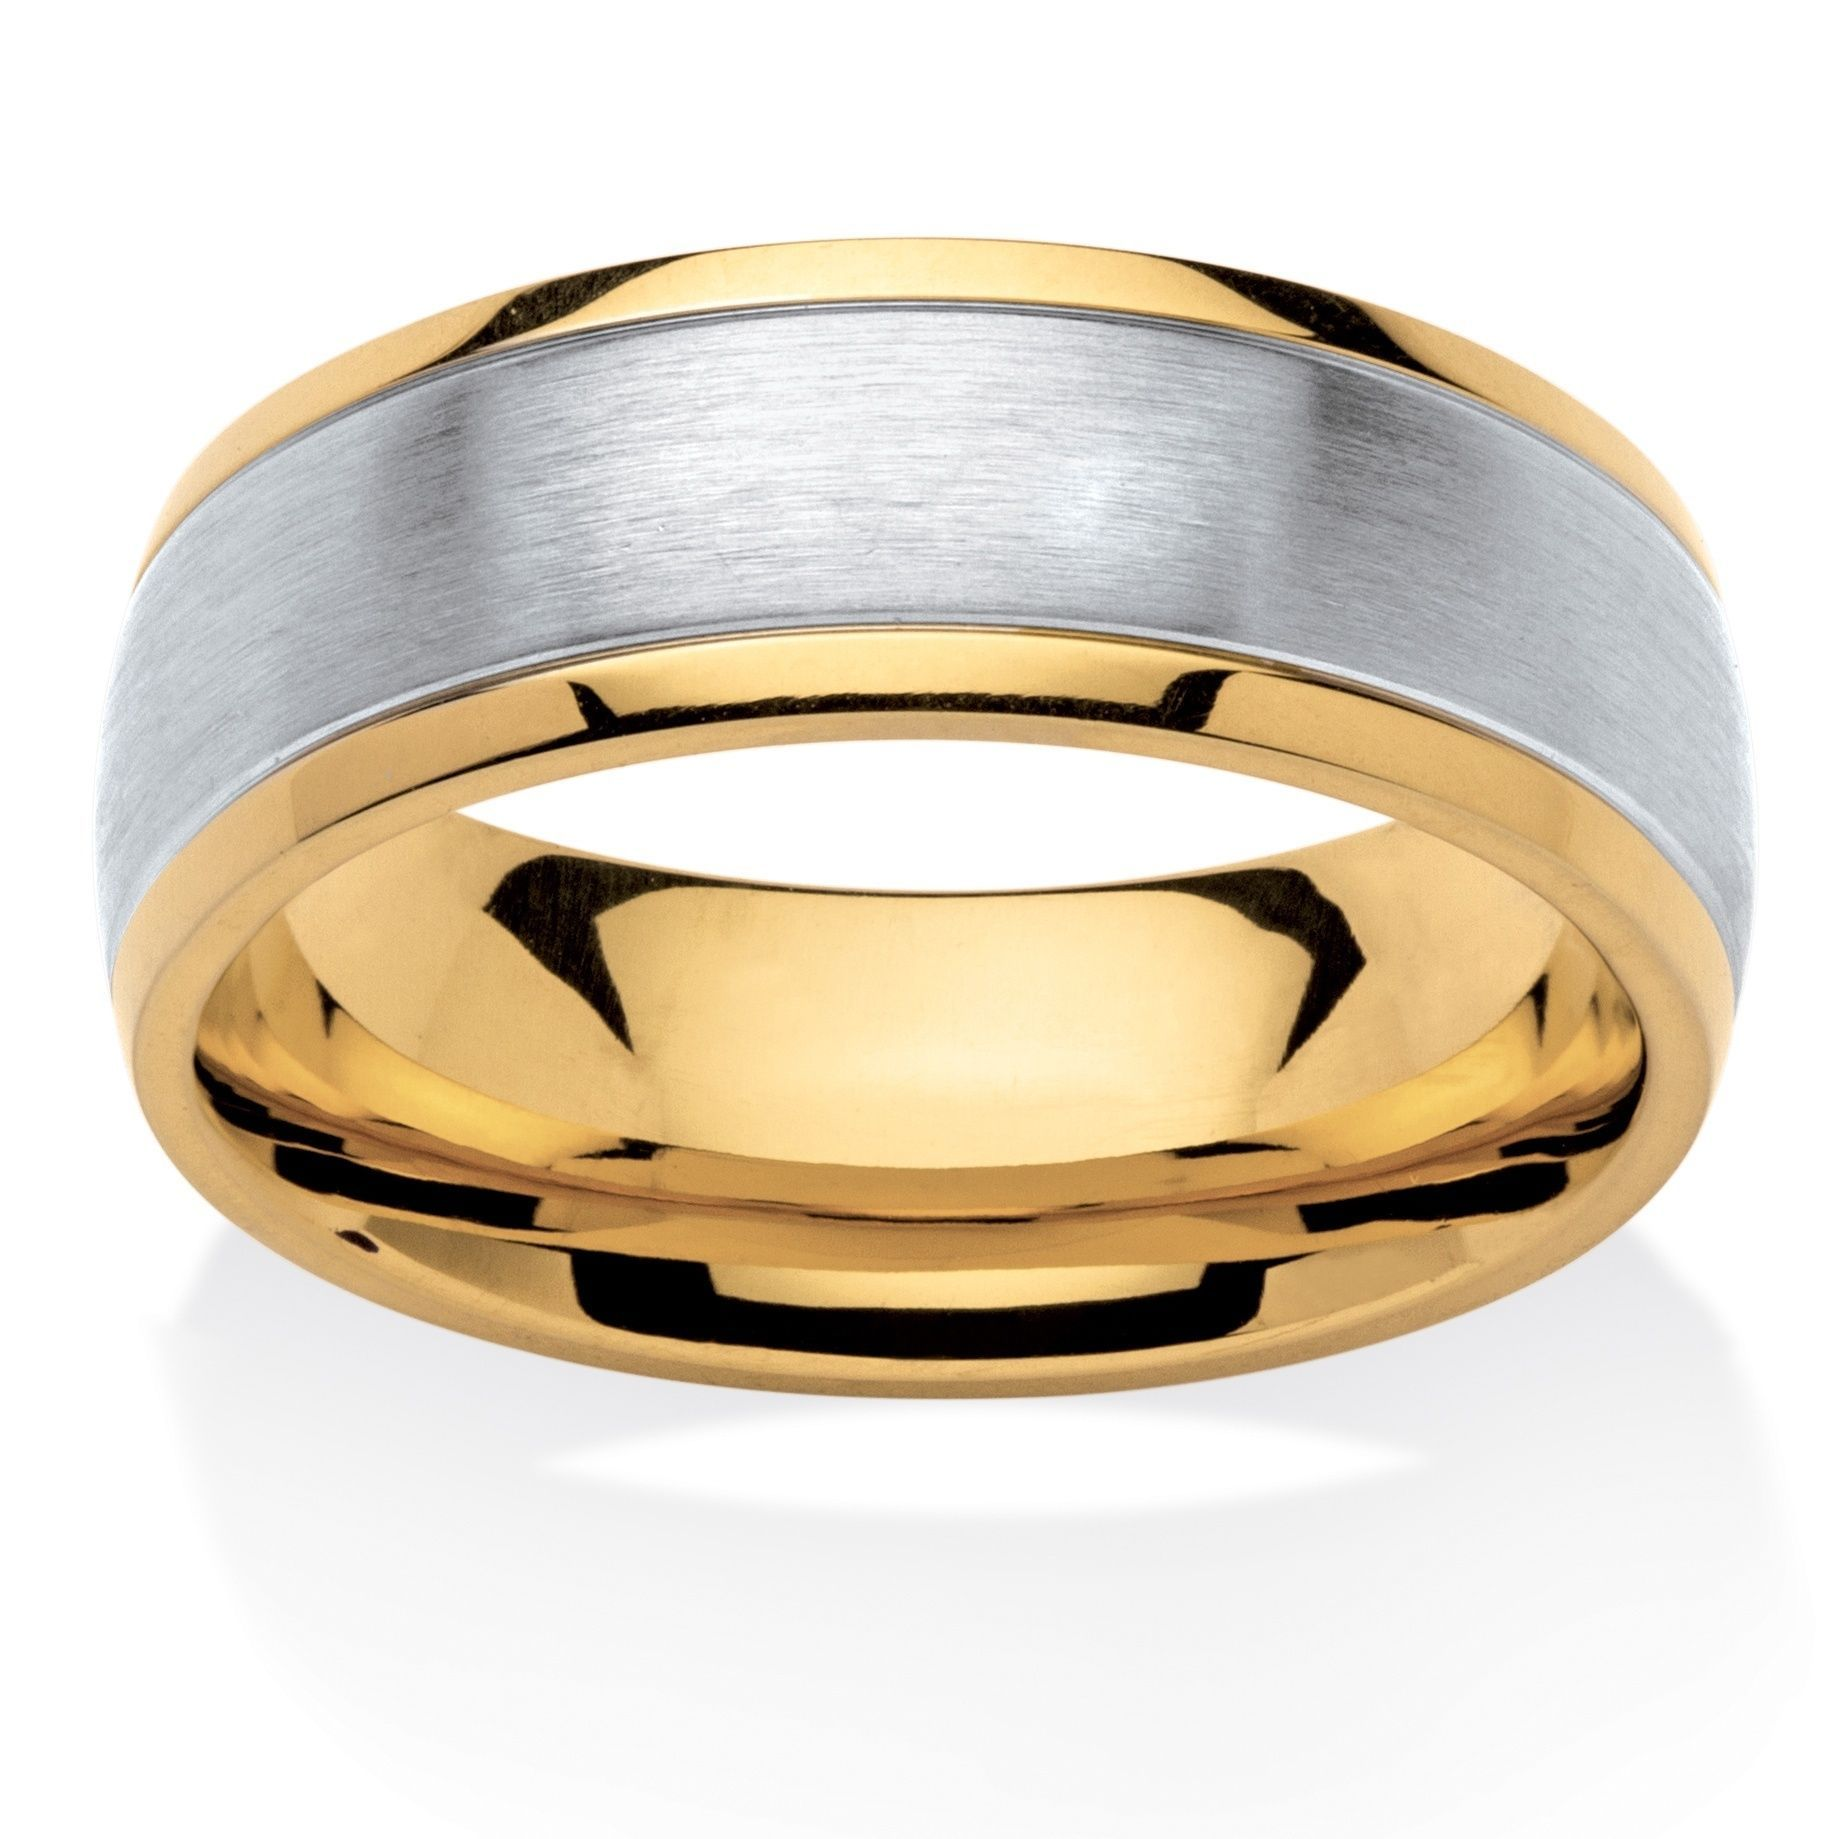 Stainless Steel and Gold Ionplated Men's Tailored Two